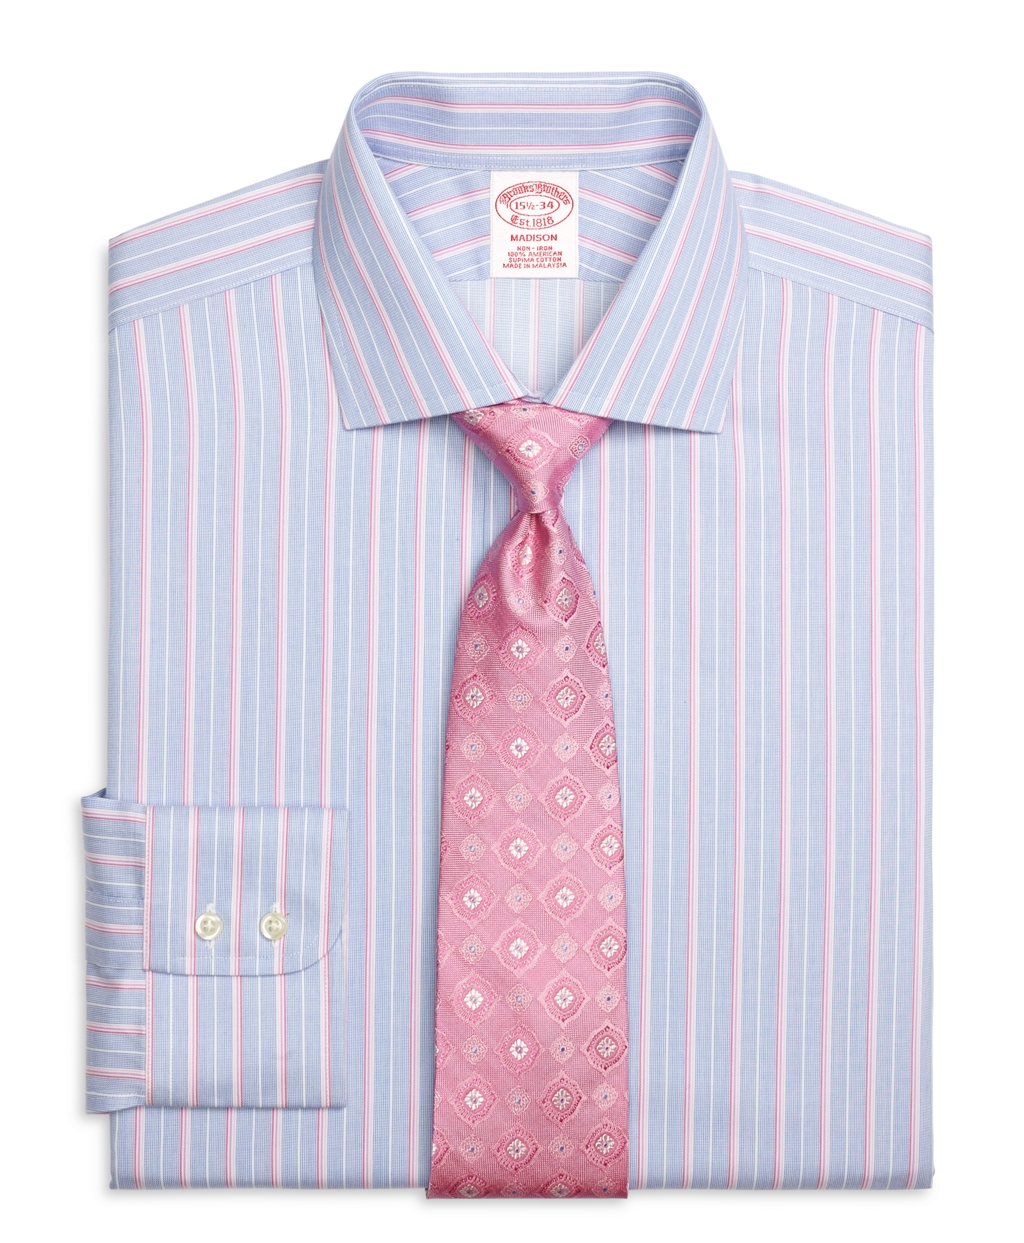 Brooks brothers non iron regent fit ombre stripe dress for Brooks brothers non iron shirts review